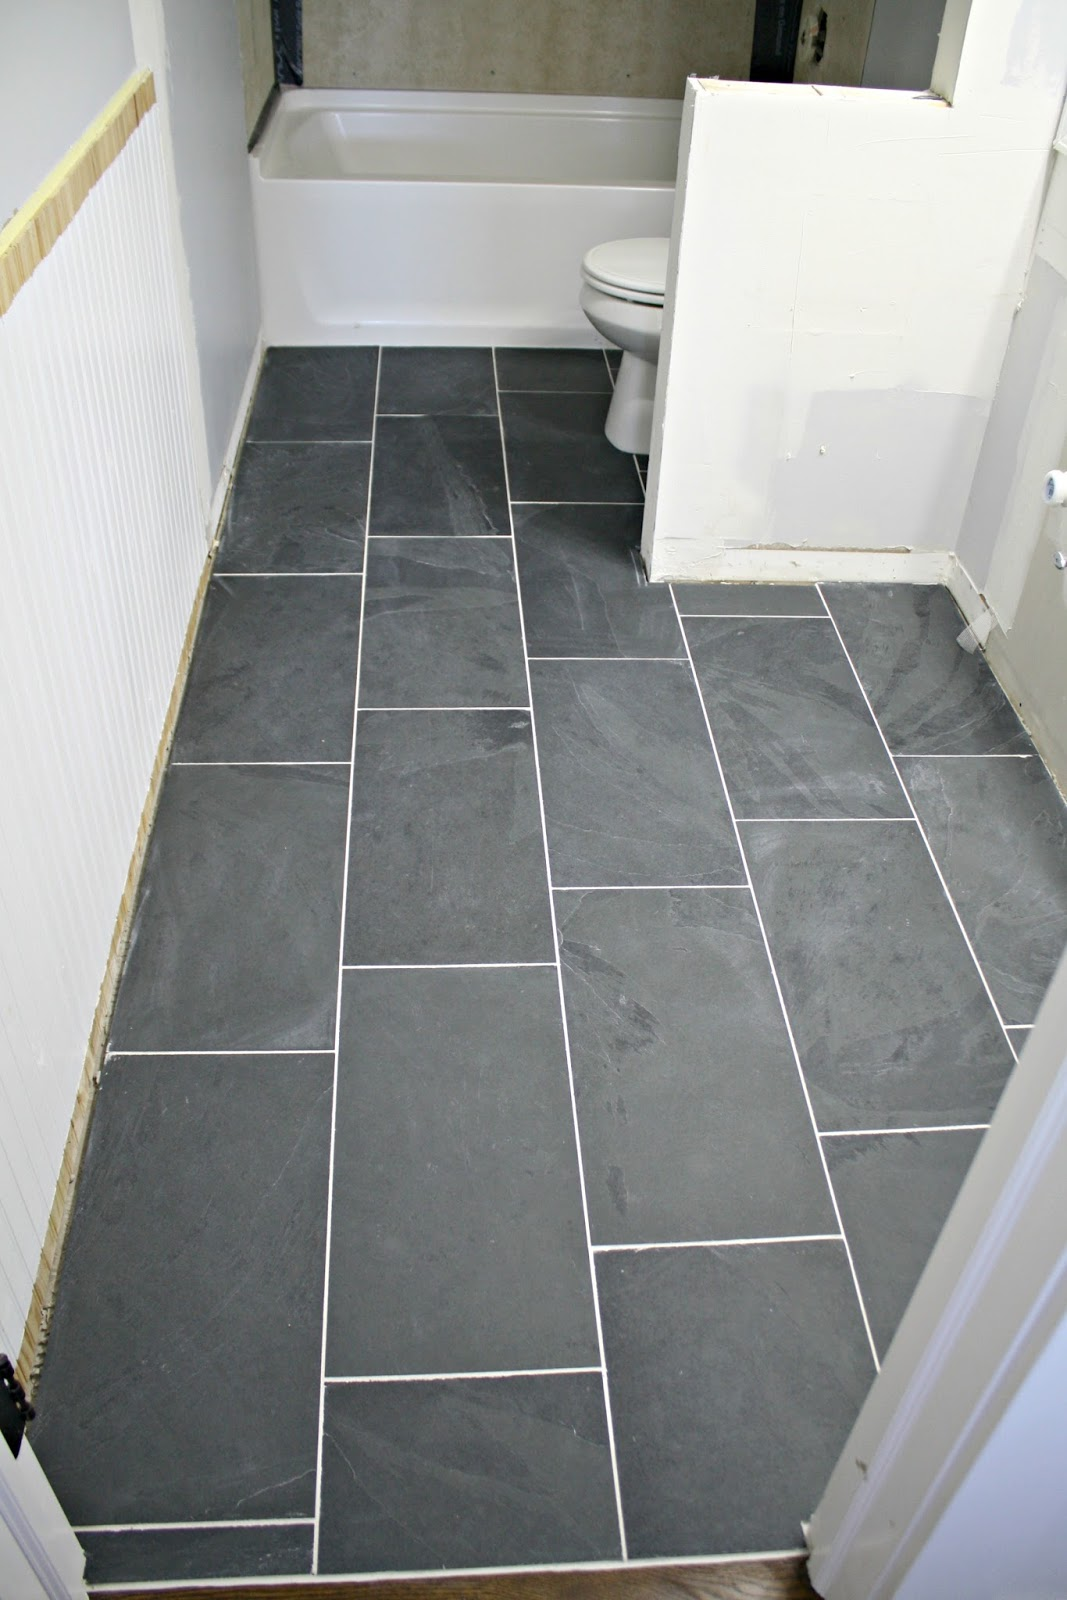 How to tile a bathroom floor (it's done!) from Thrifty ...